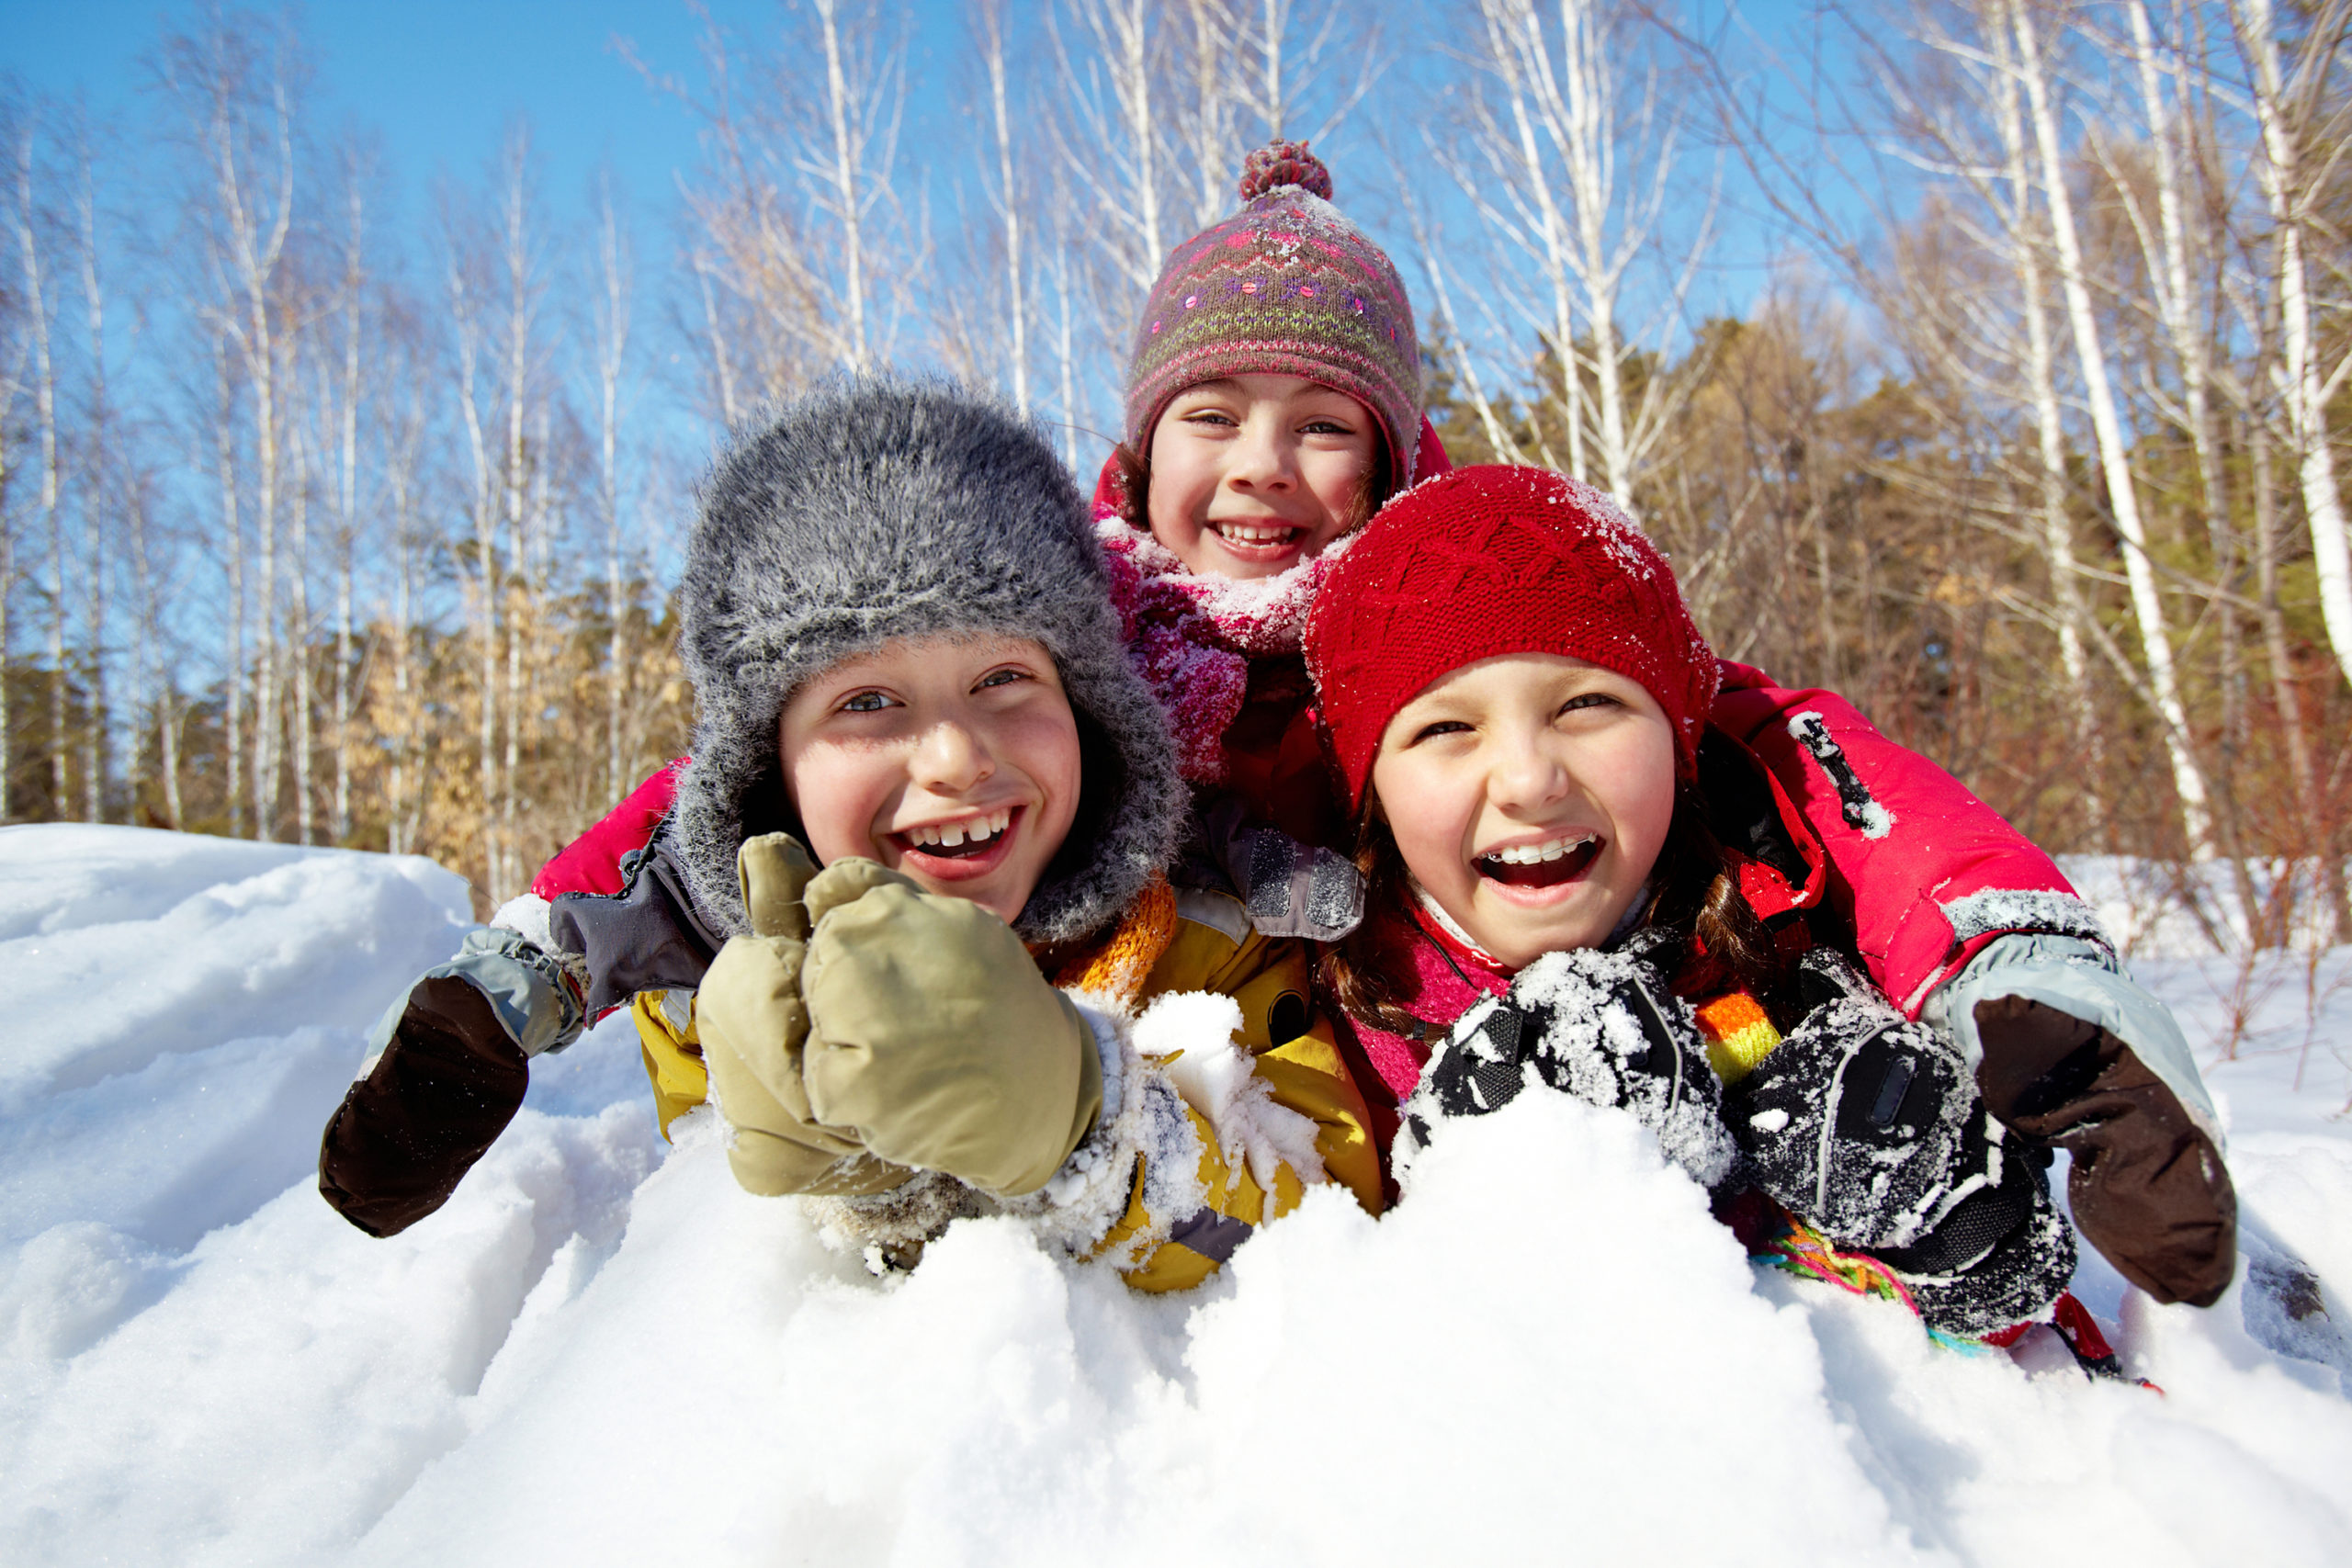 3 kids in snow pile laughing